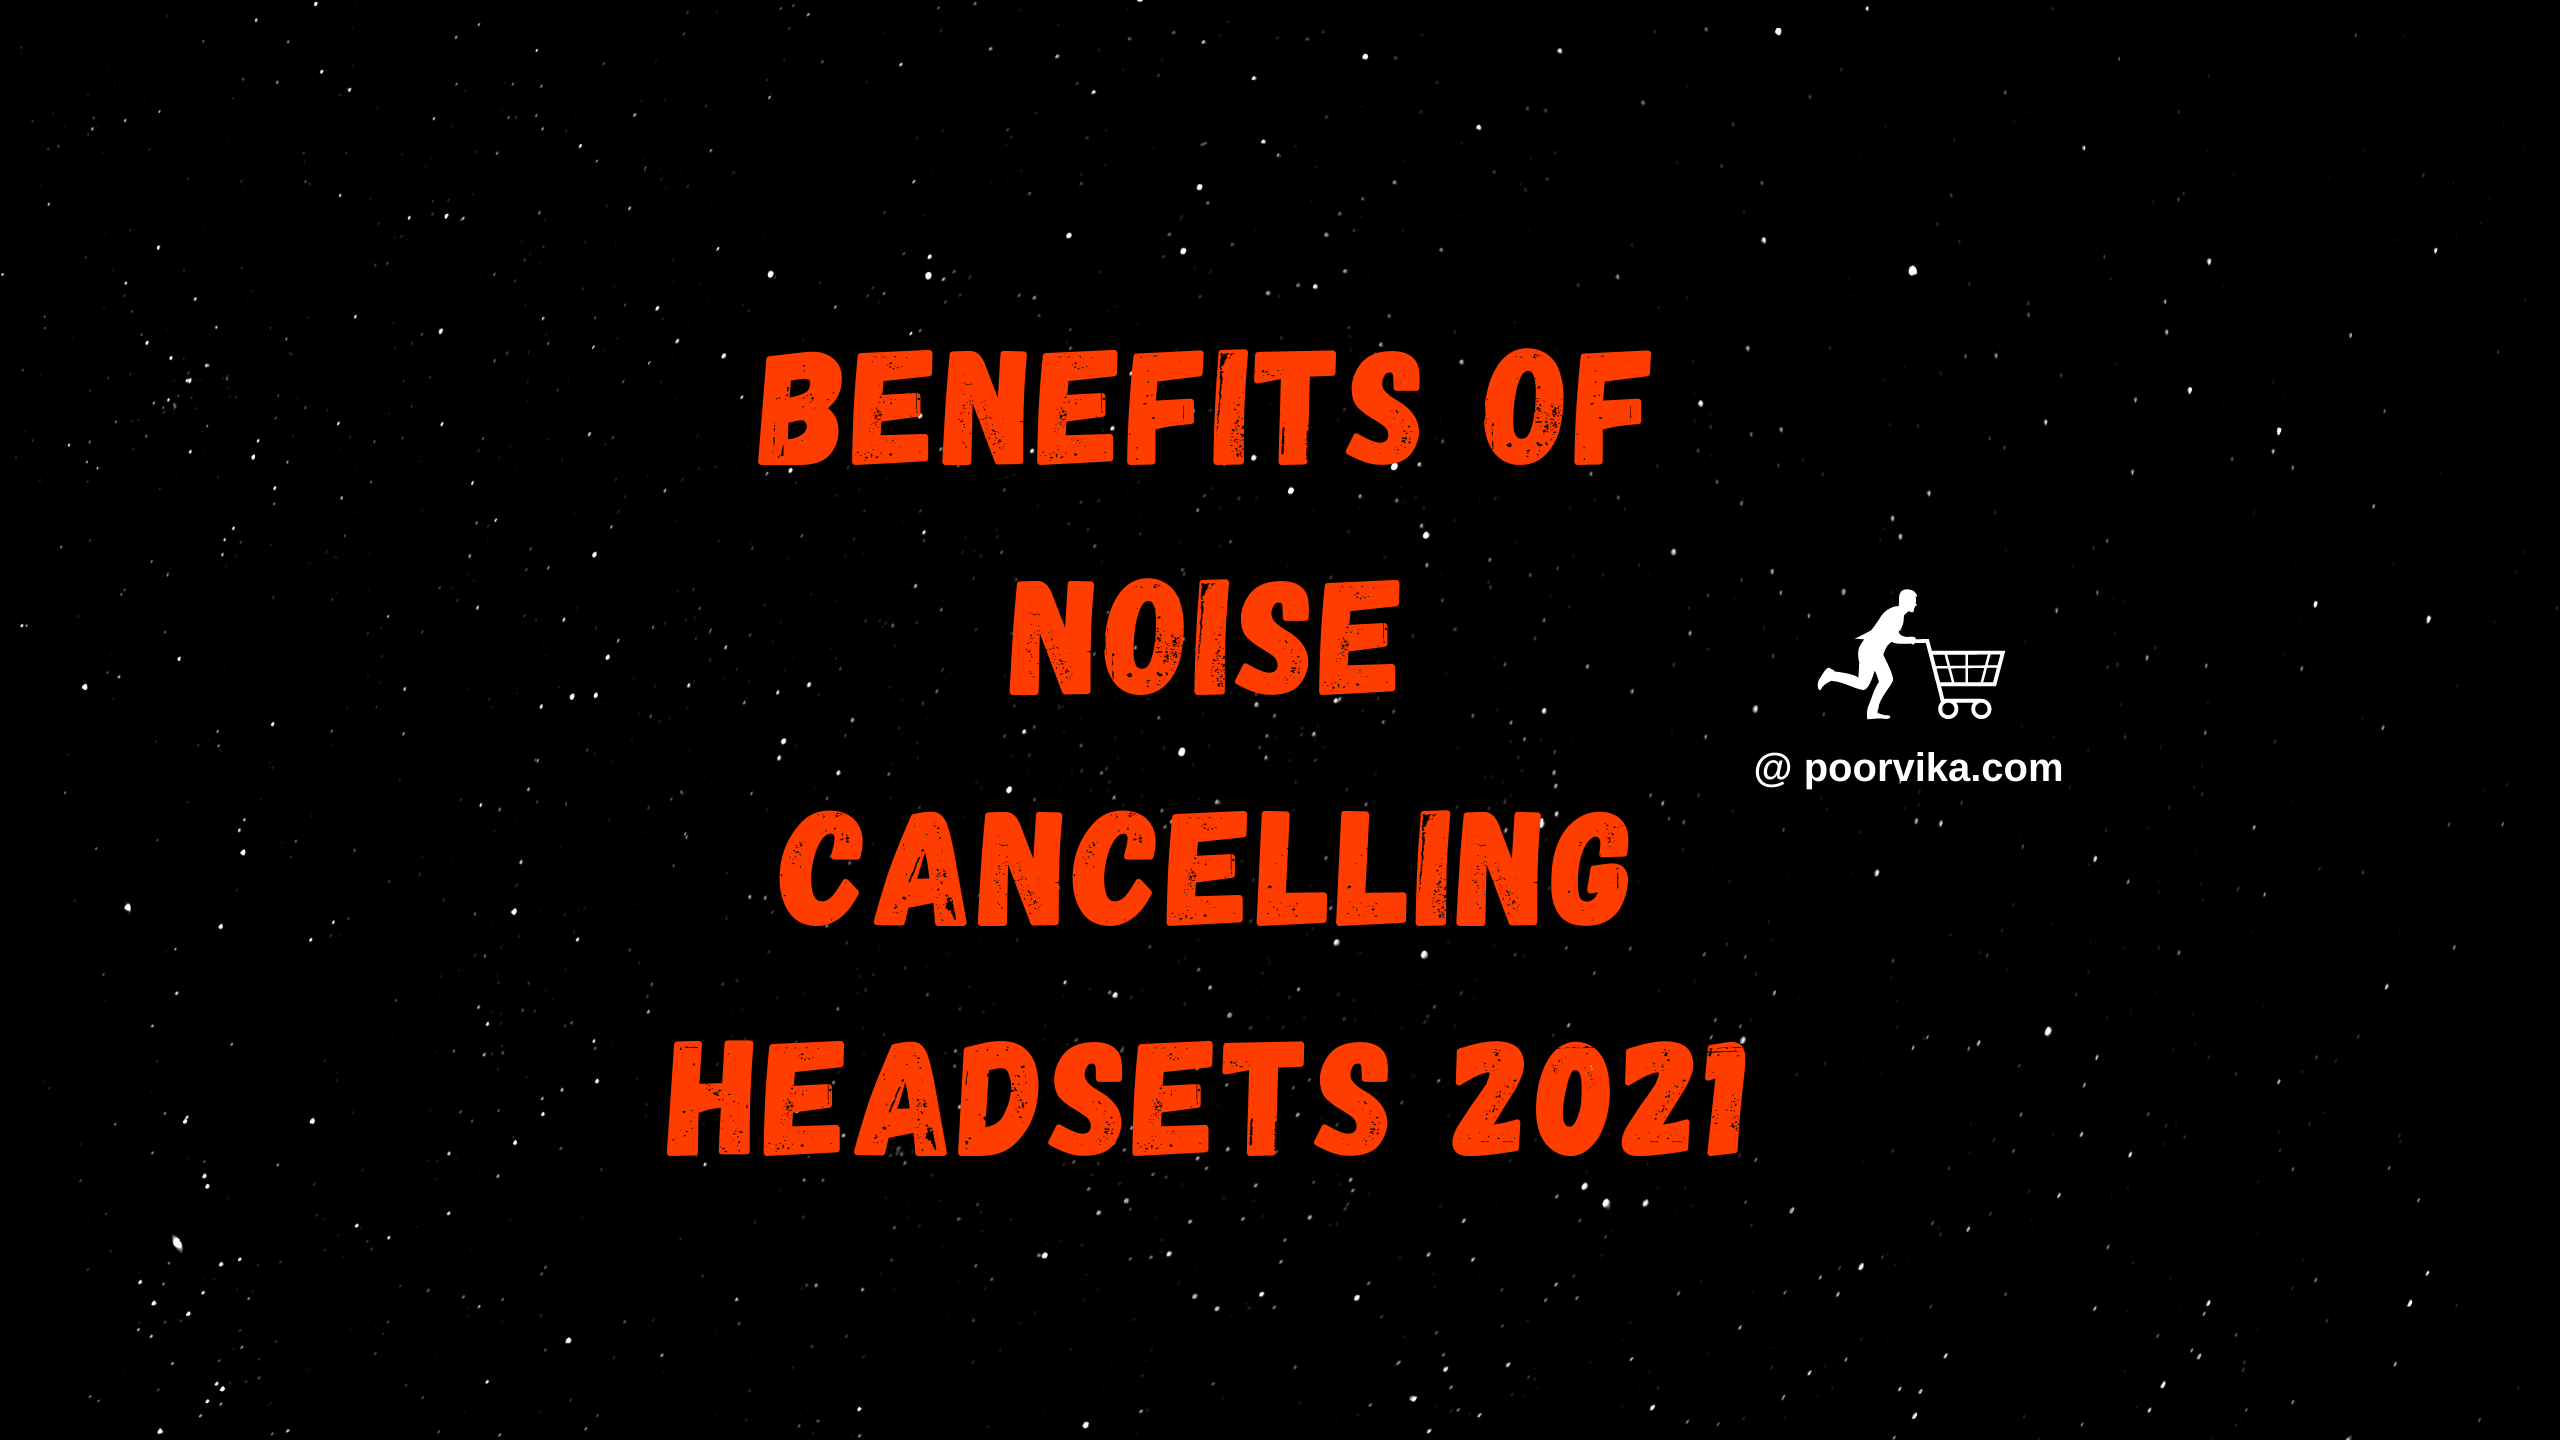 Benefits of Noise Cancelling Headsets 2021